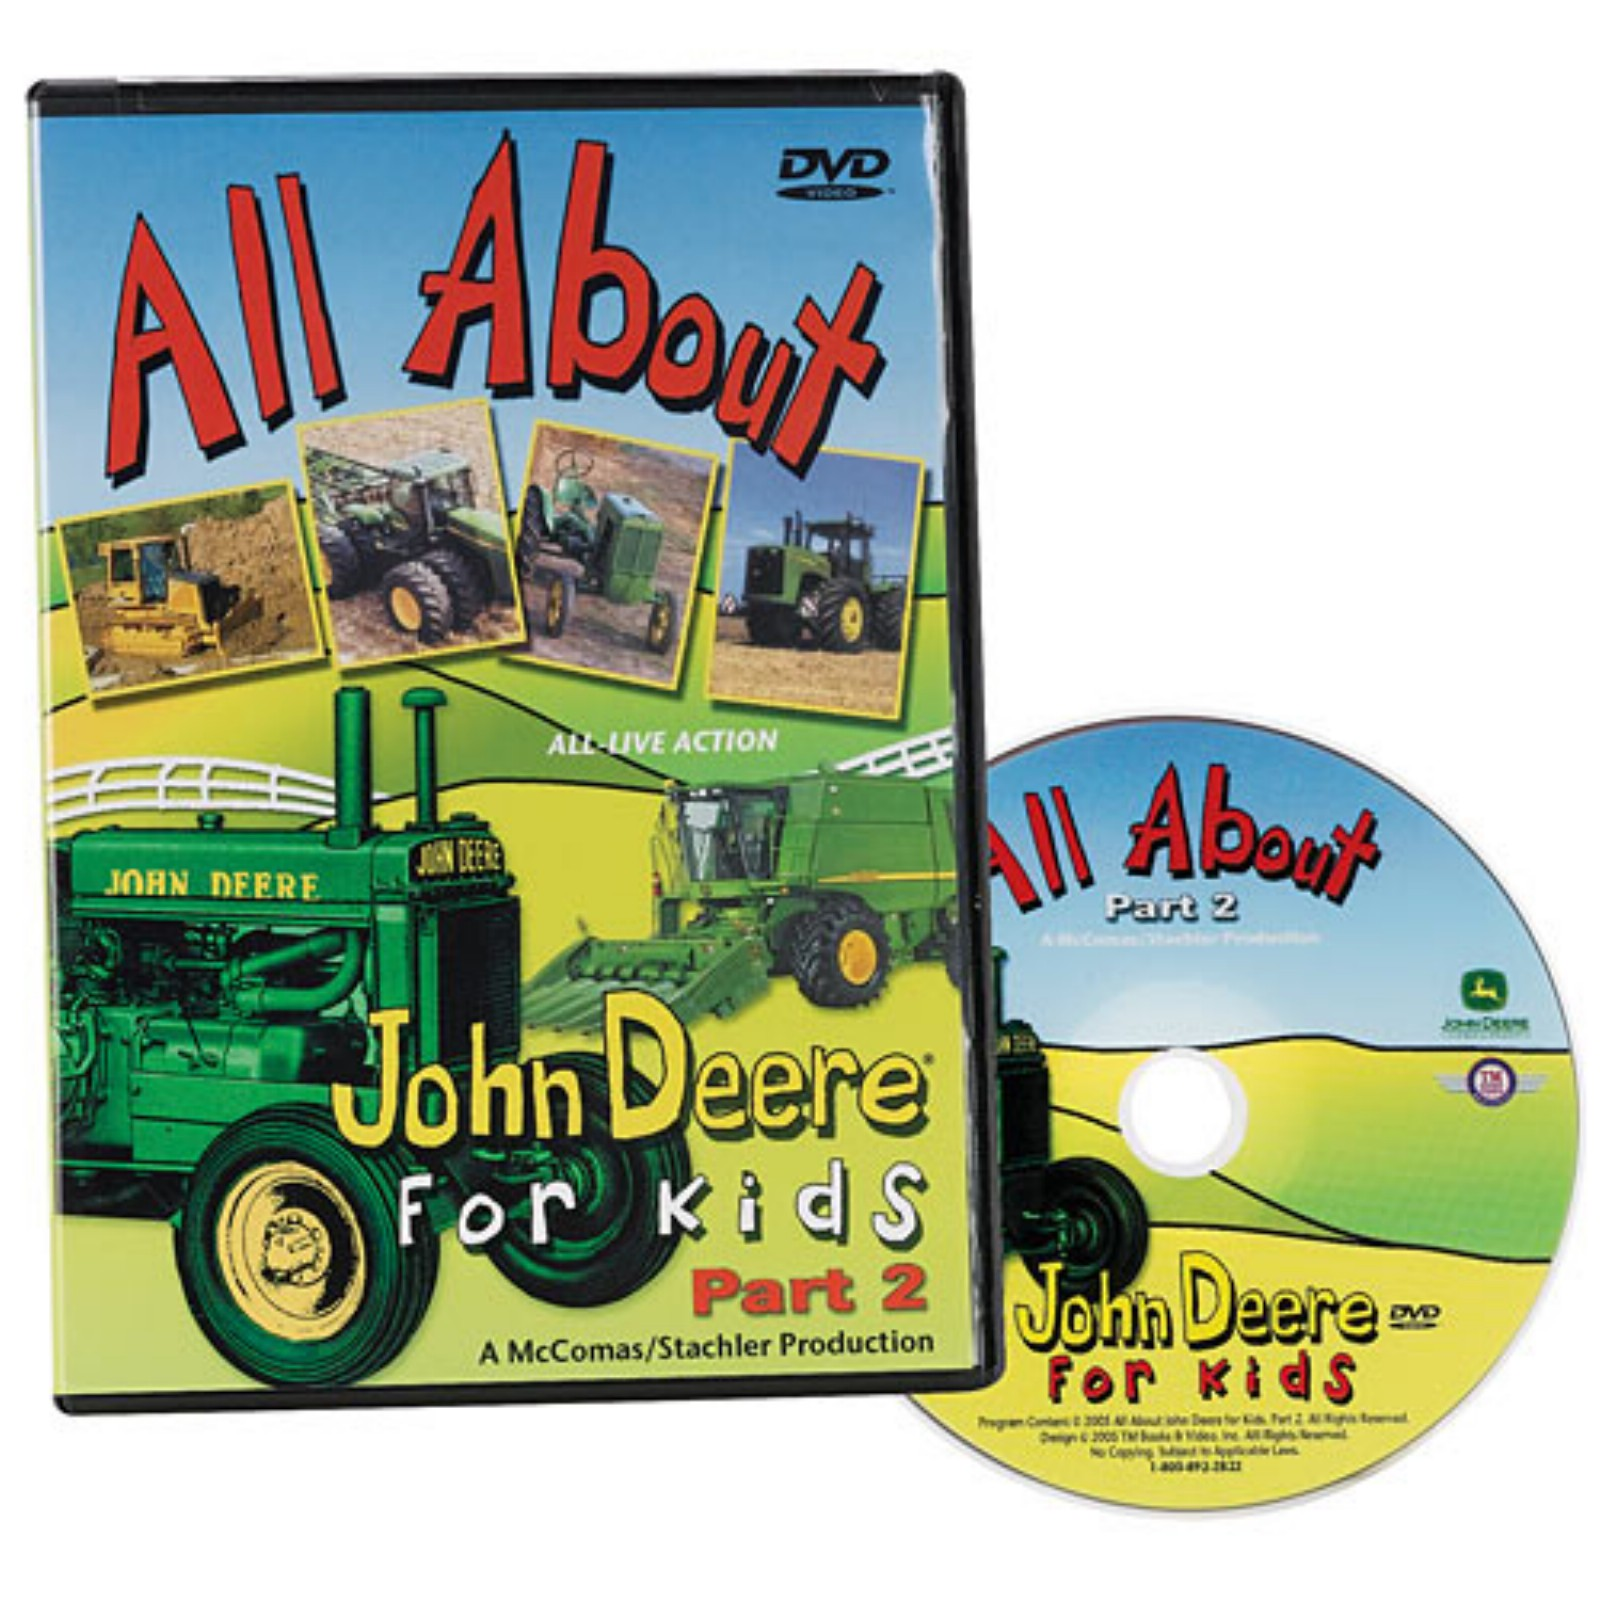 DVD: All About John Deere for Kids, Part 2 | BirthdayExpress.com